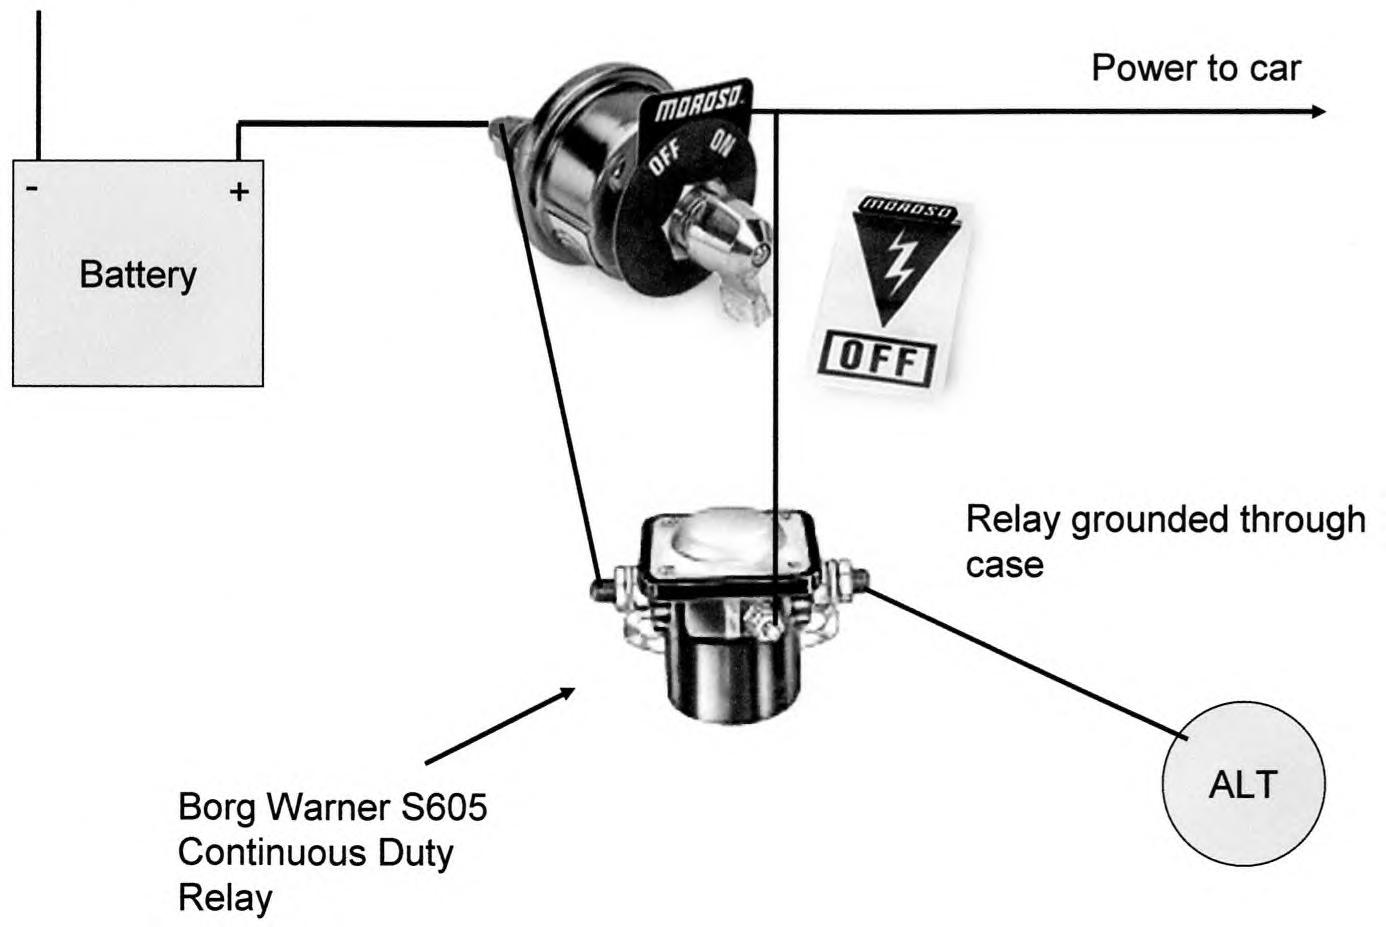 battery cut off switch wiring diagram nissan alternator correct way to wire and unlawfl 39s